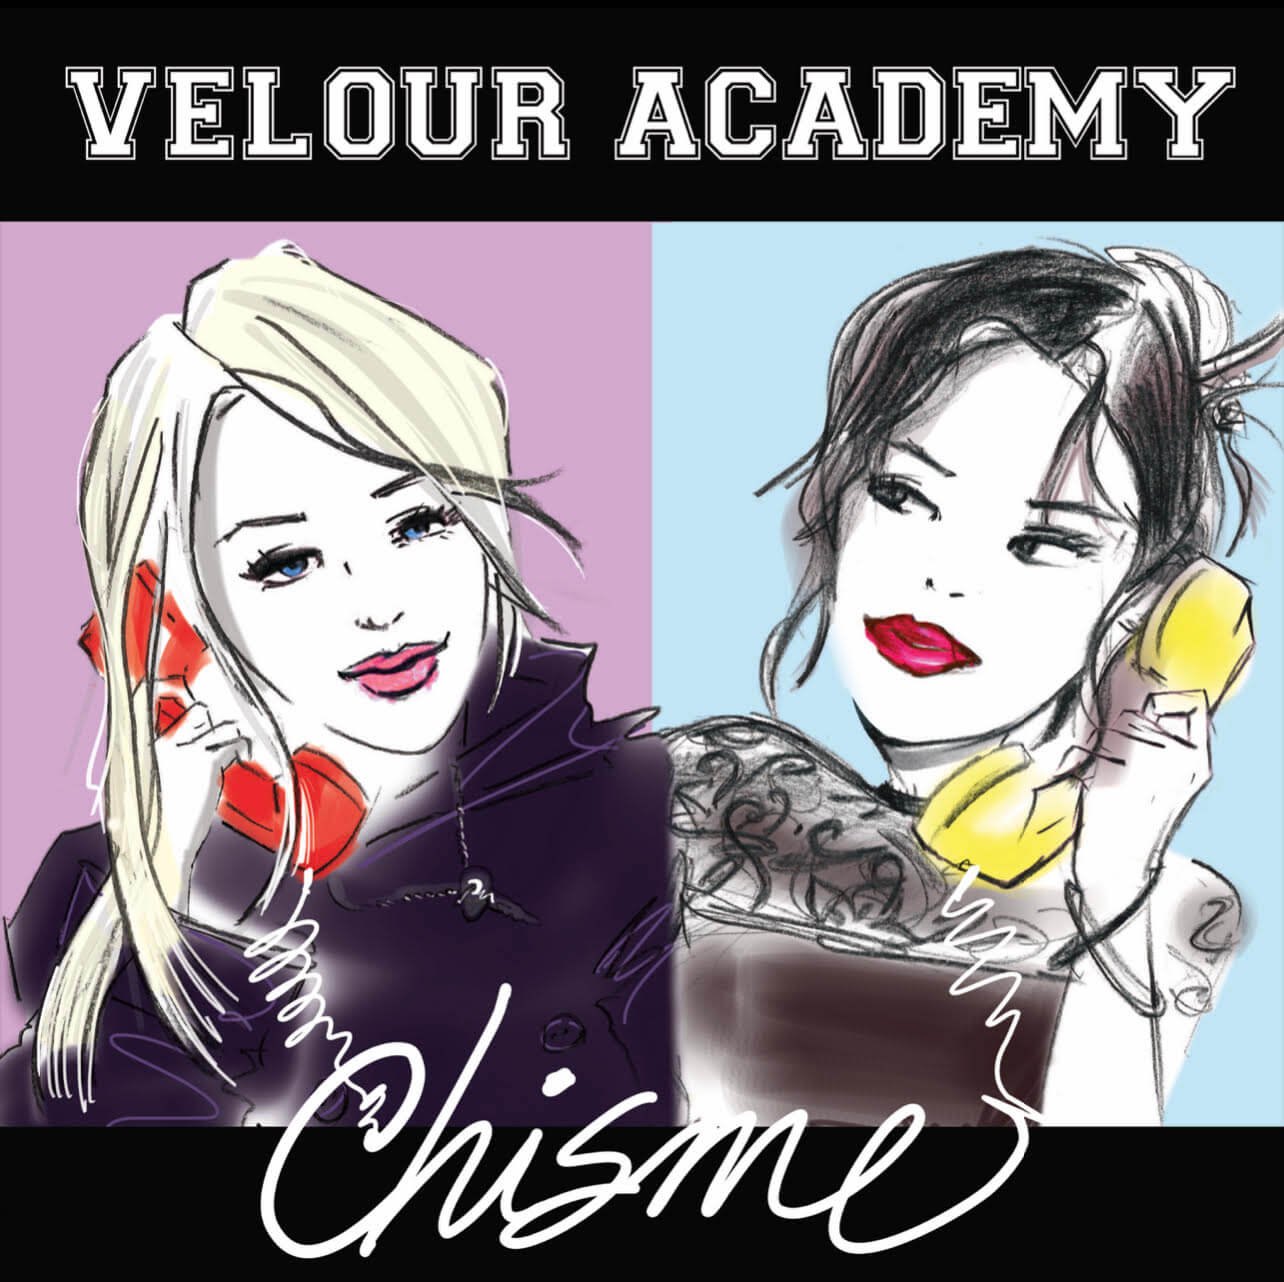 """Velour Academy Debut """"All Alone."""" The track is off the Los Angeles band's forthcoming release Chisme, available June 4, 2021"""